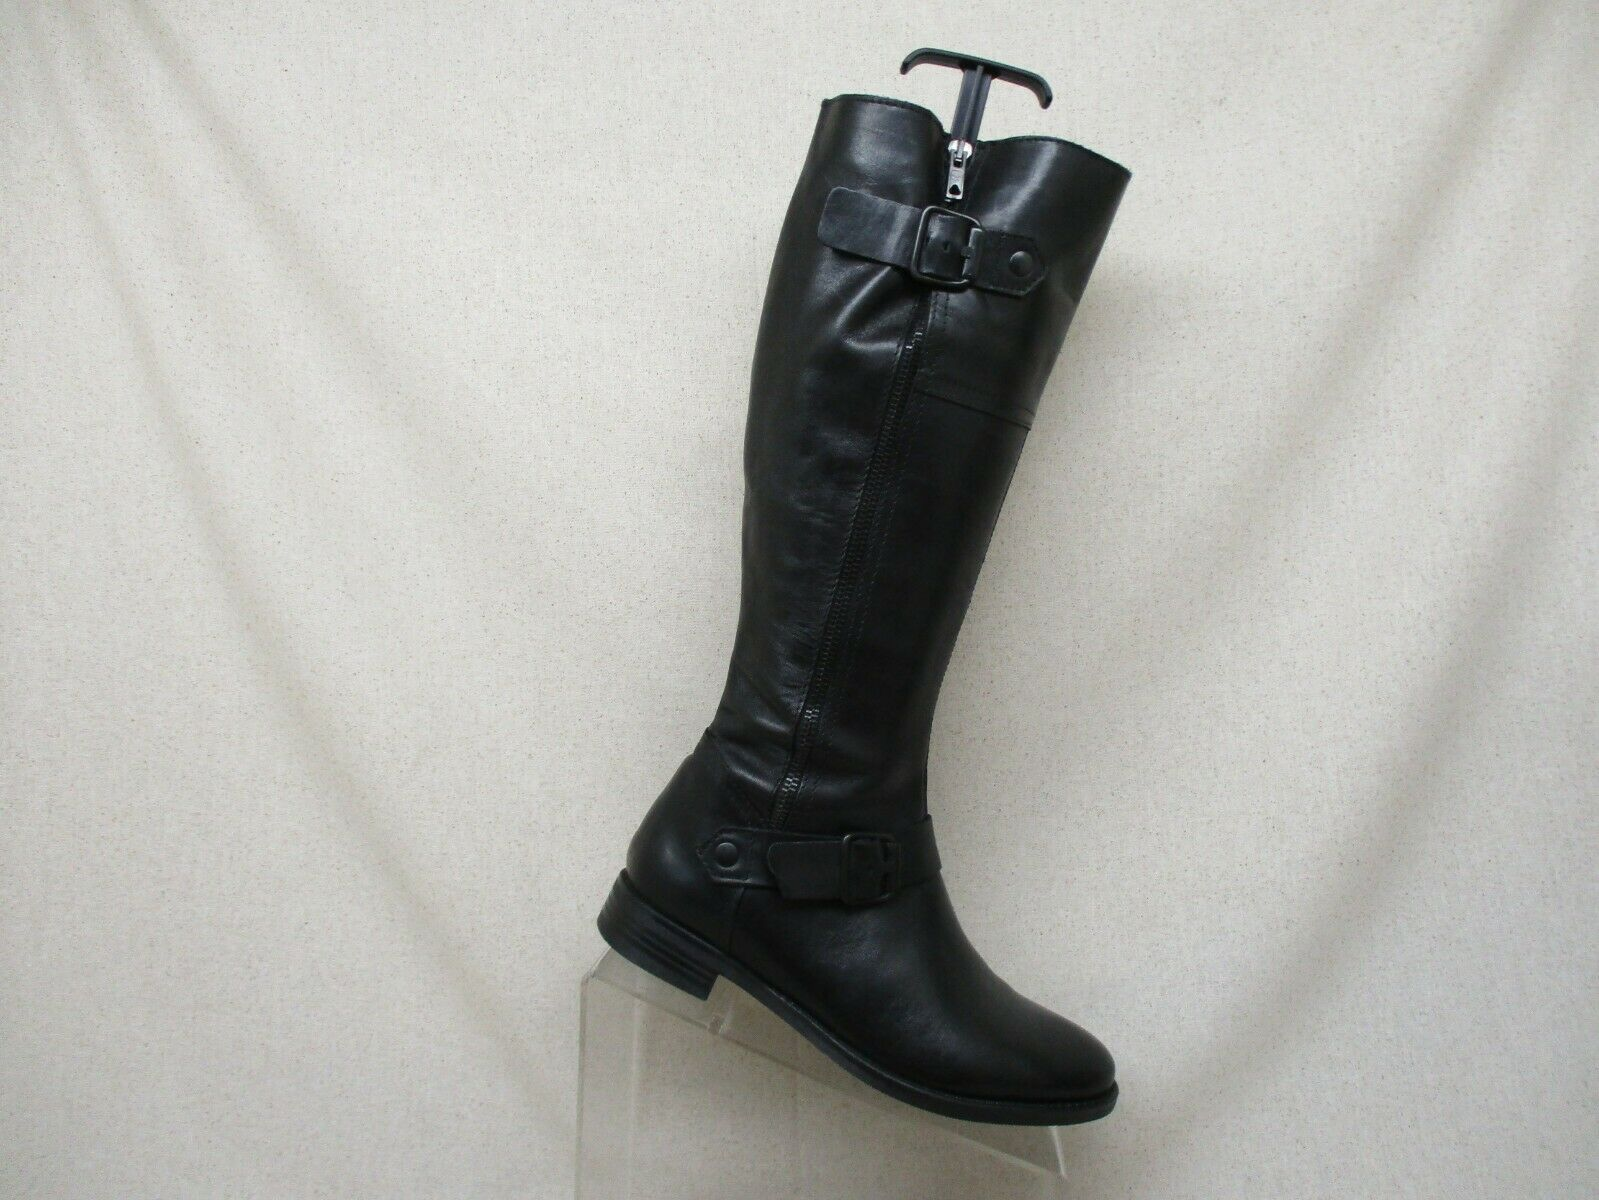 ALDO Black Leather Side Zip Buckle Knee High Fashion Riding Boots Size 37 EUR